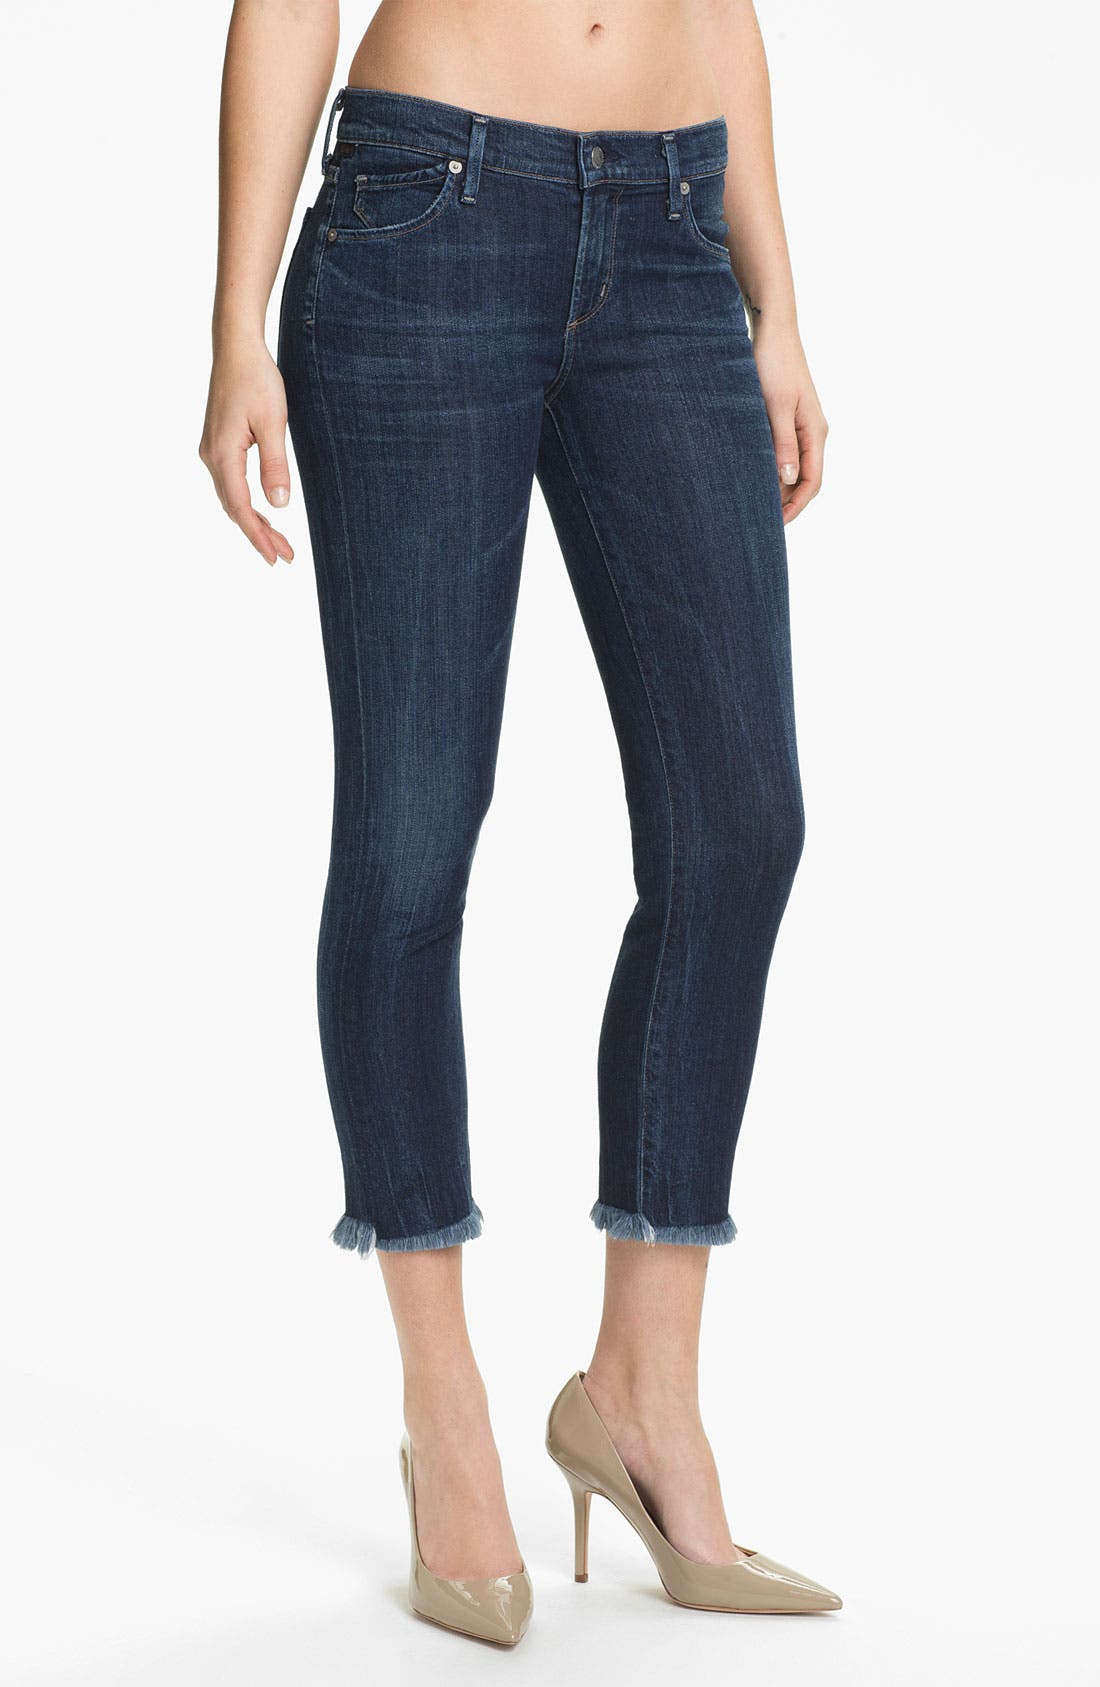 Alternate Image 1 Selected - Citizens of Humanity Cutoff Crop Skinny Jeans (Taboo)